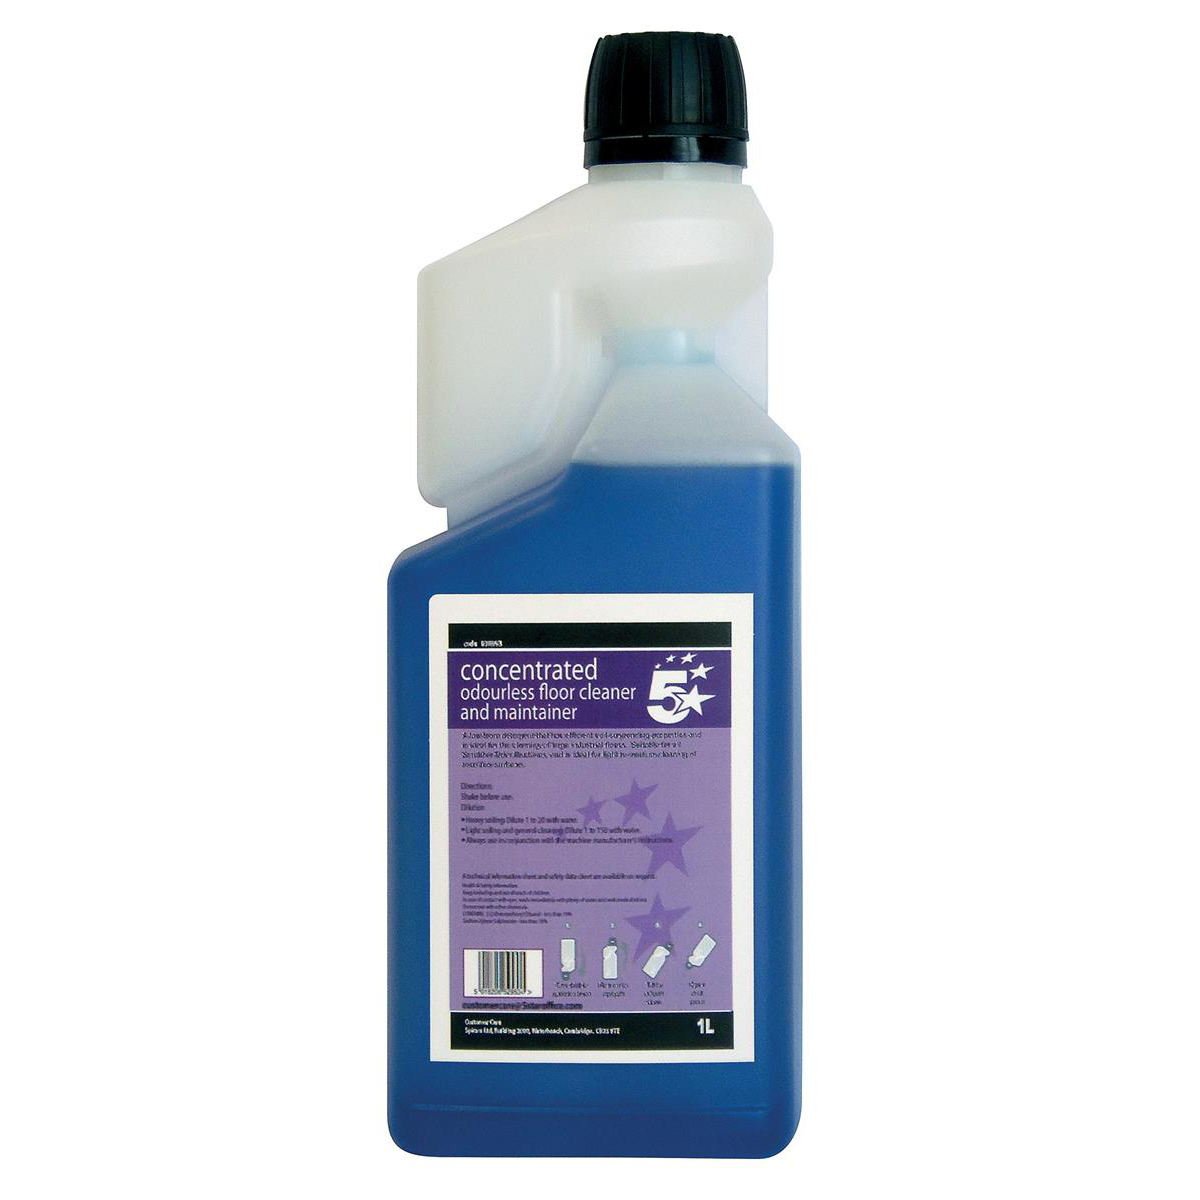 5 Star Facilities Concentrated Odourless Floor Cleaner and Maintainer 1 Litre